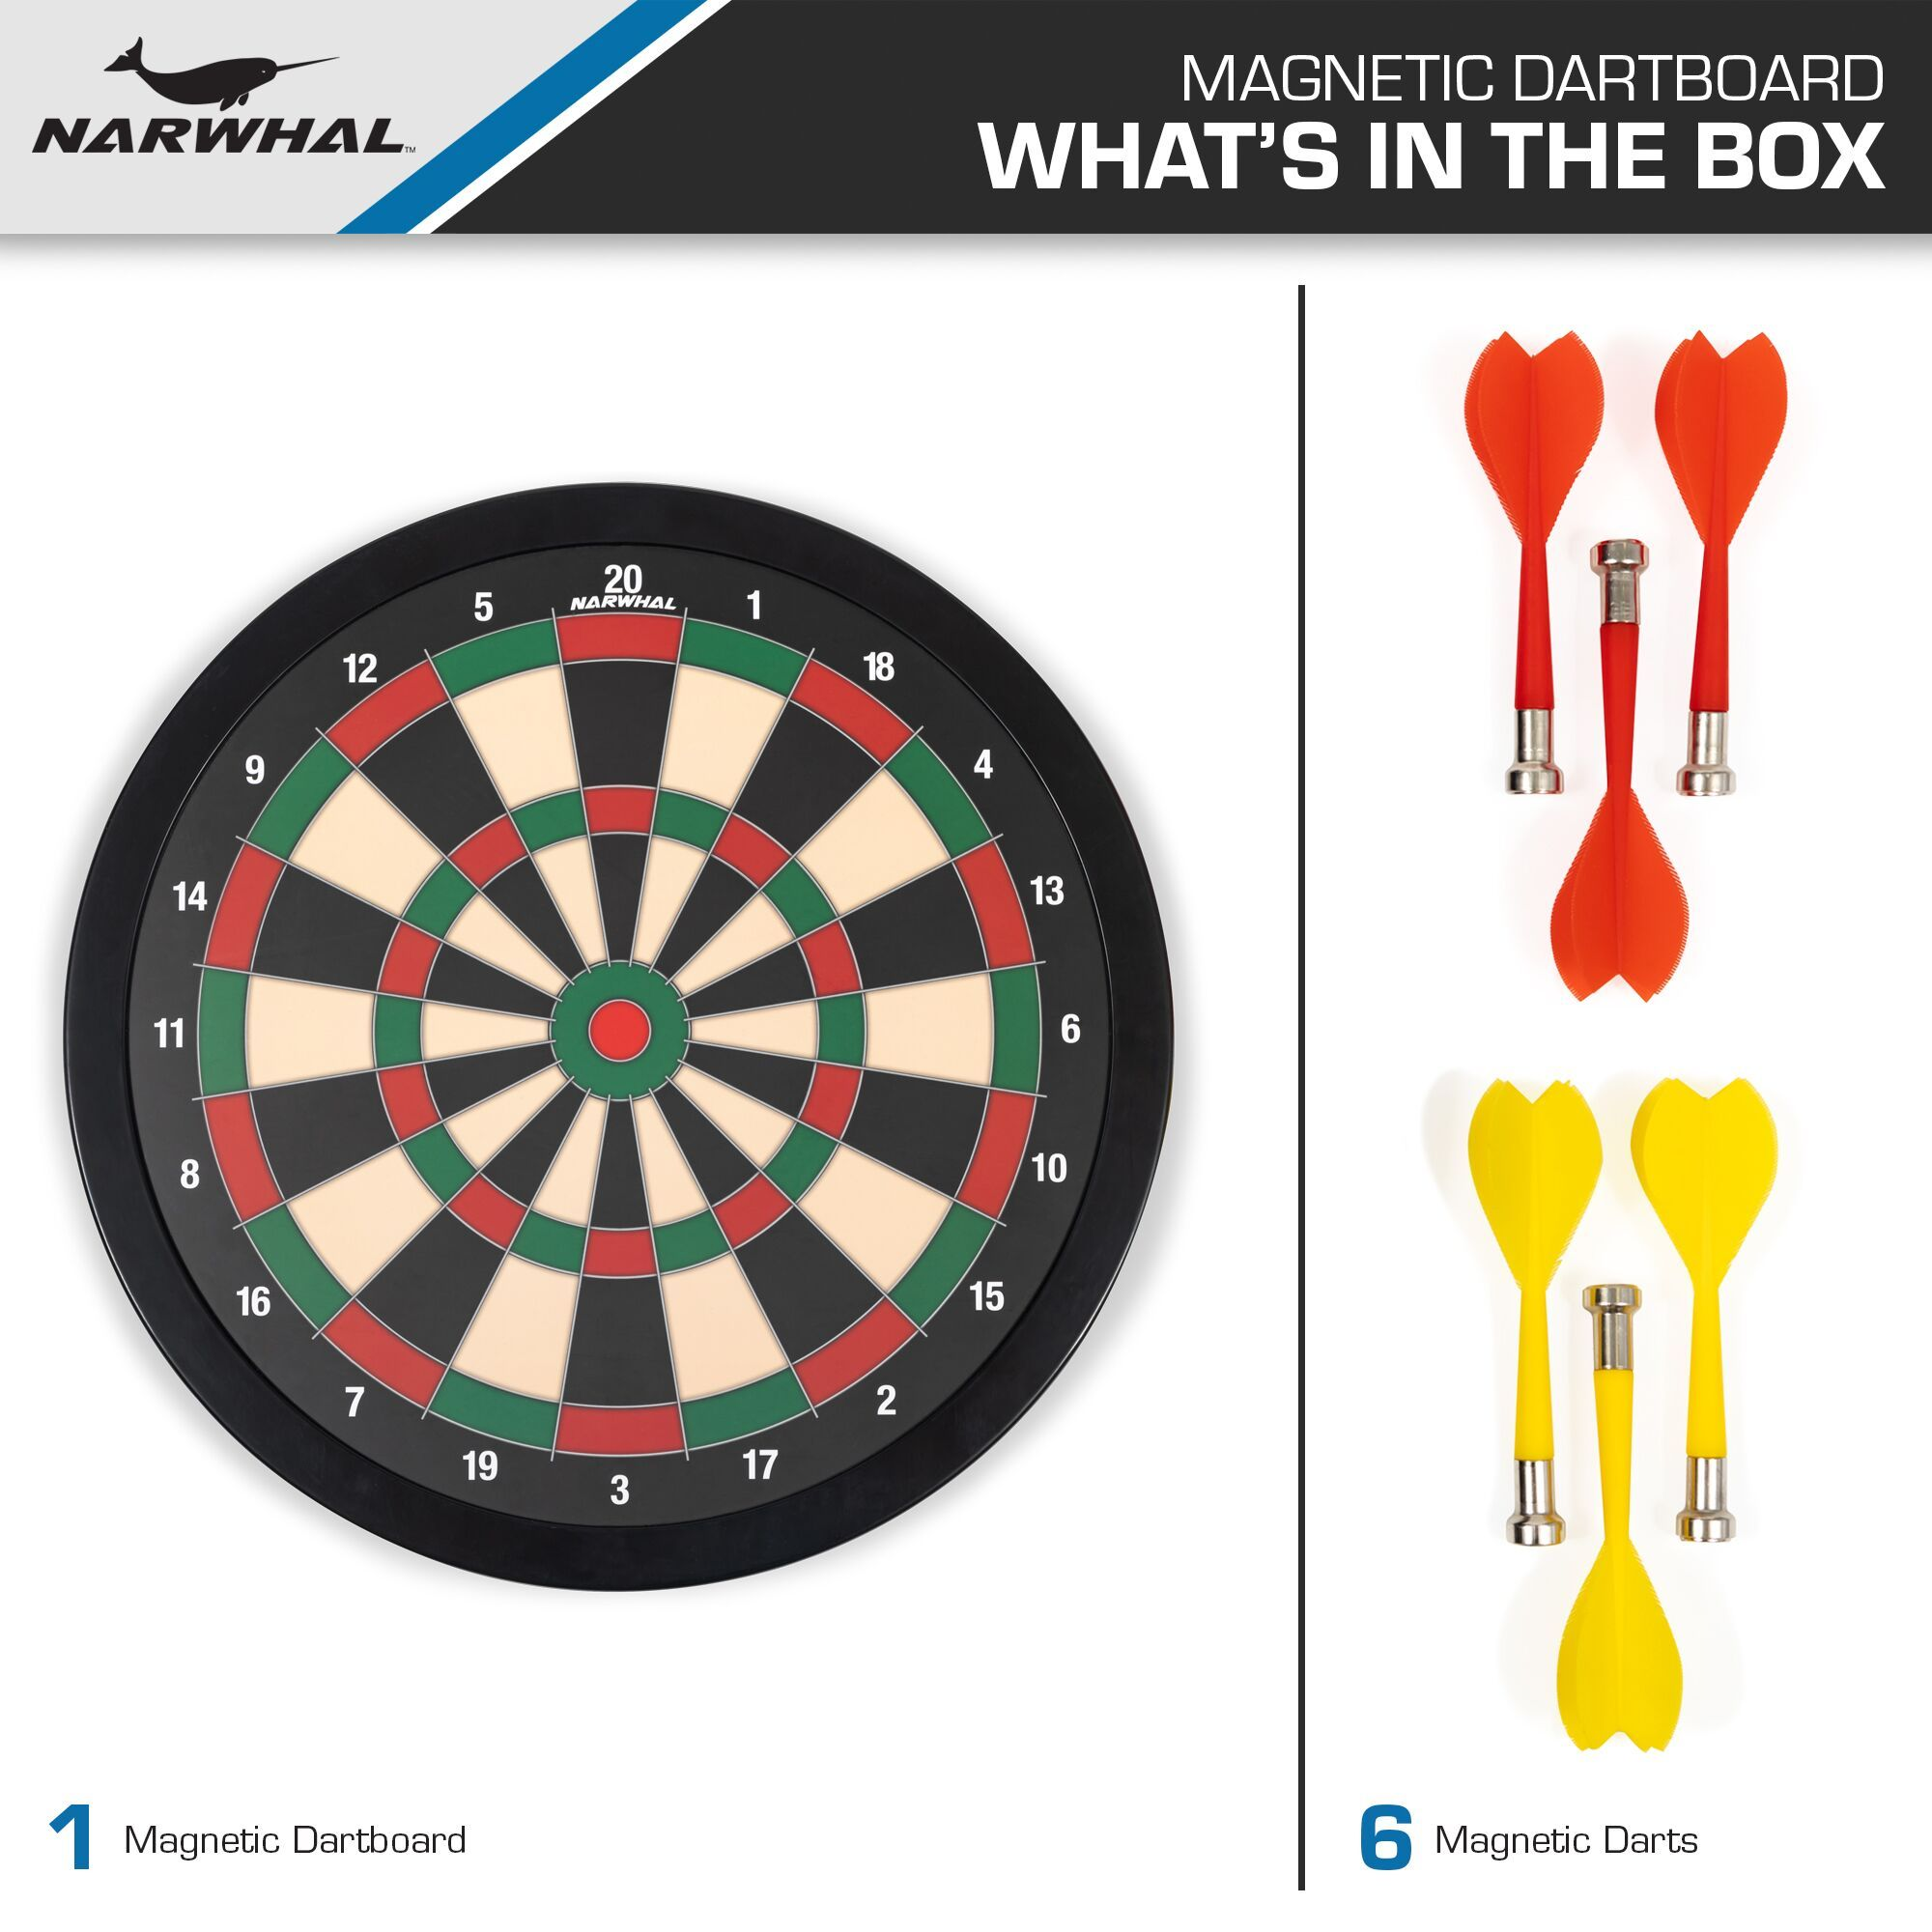 Narwhal 15 5 Magnetic Dartboard Includes Six Magnetic Darts Ad